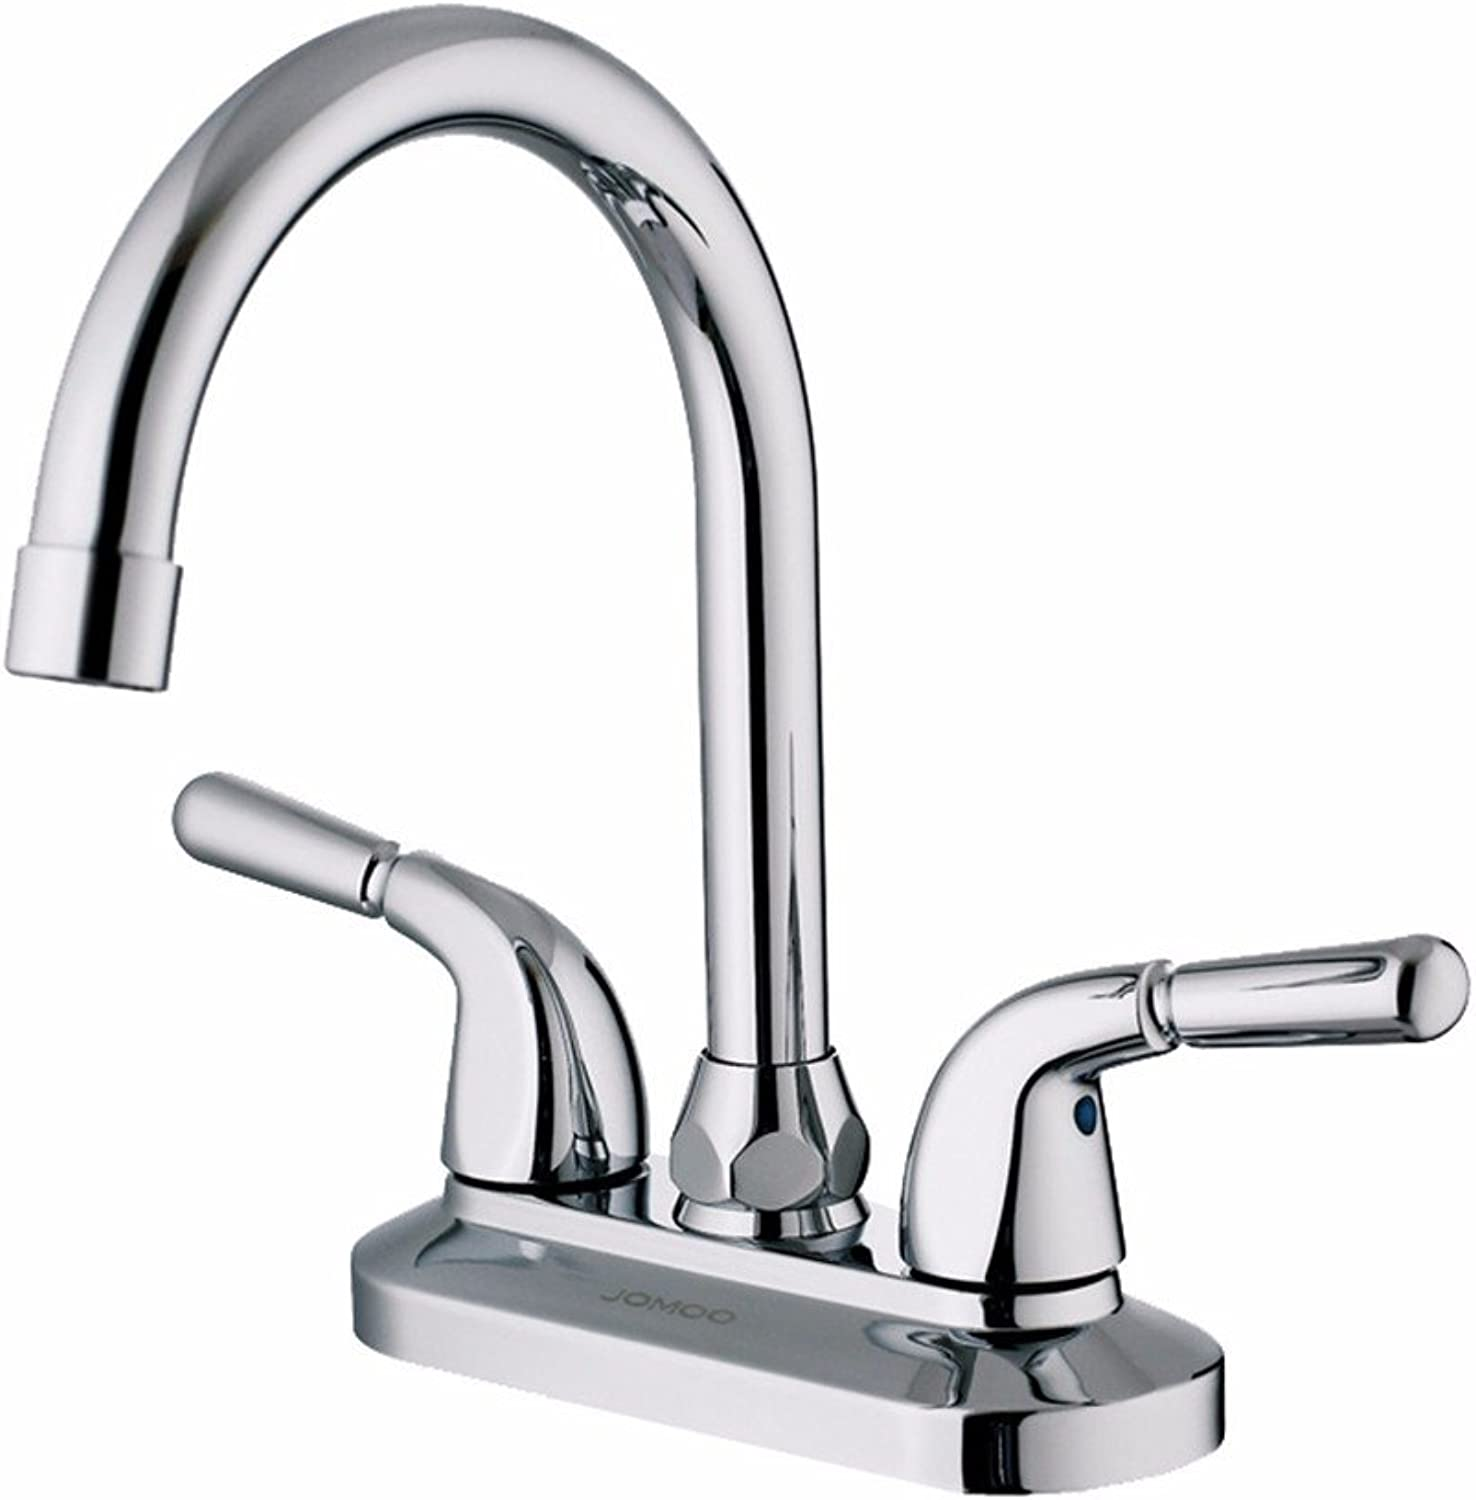 SHLONG Tap ?Double Handle Double Basin Top Basin Faucet Basin Hot and Cold Water Faucet